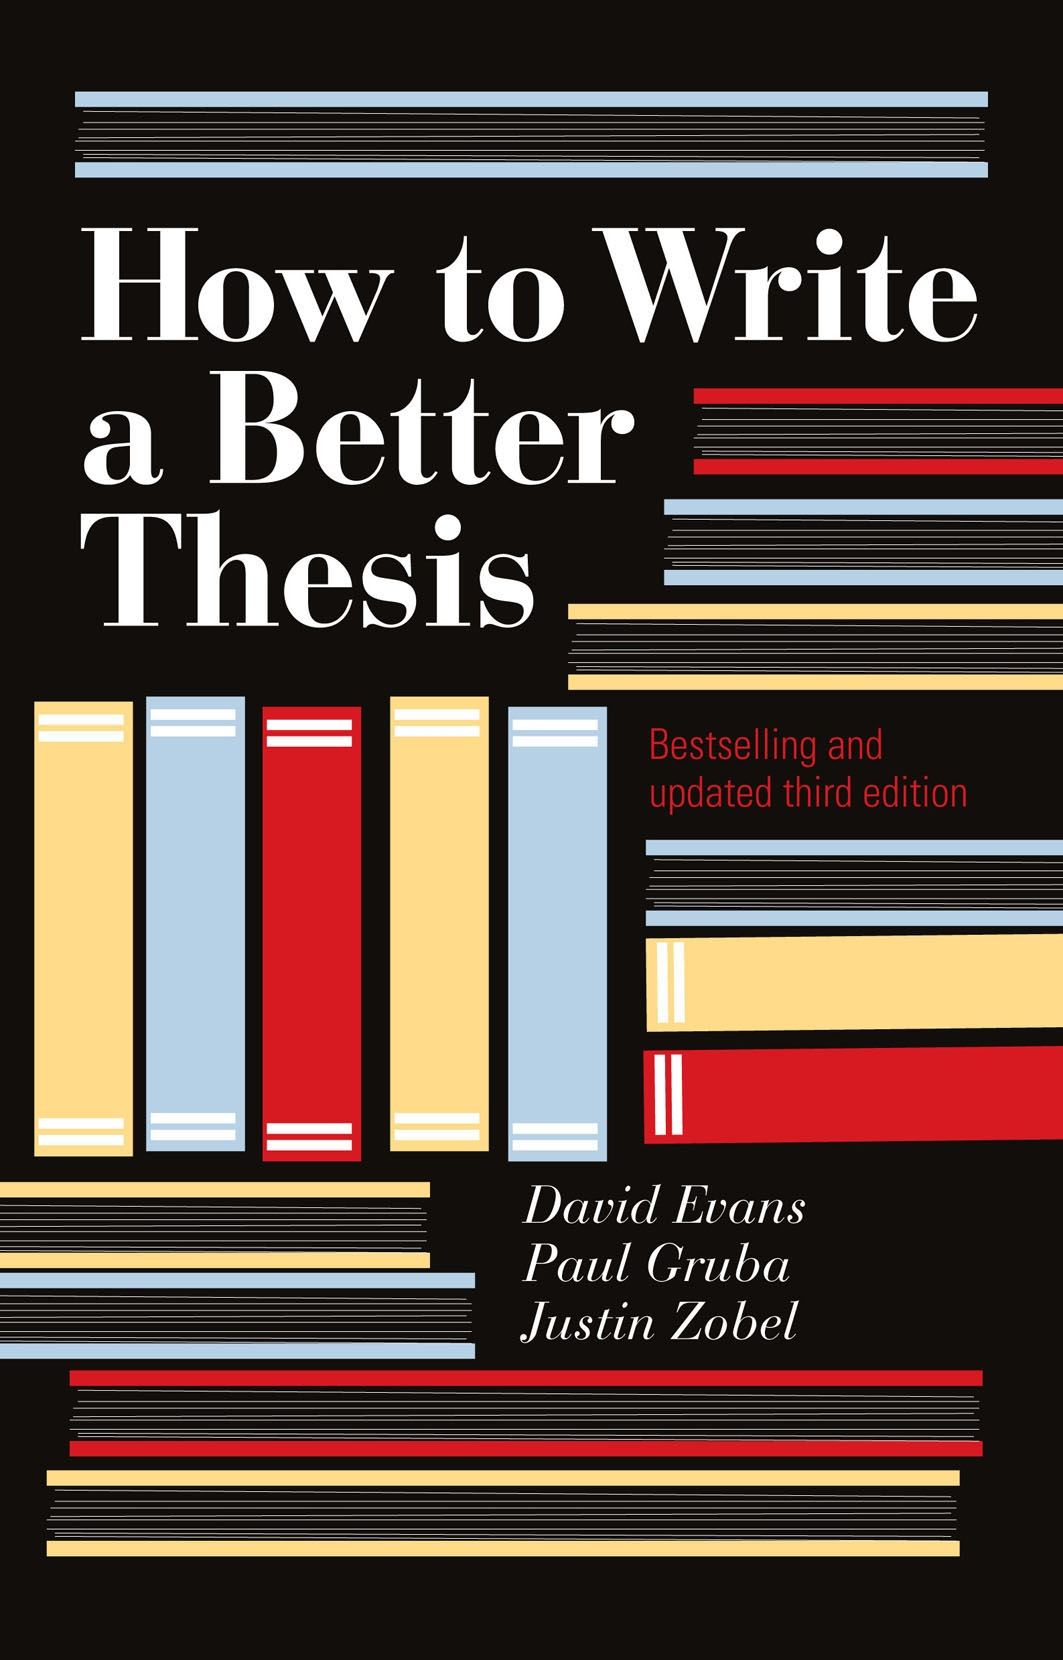 How to write a better thesis 3rd edition david evans justin how to write a better thesis 3rd edition fandeluxe Image collections